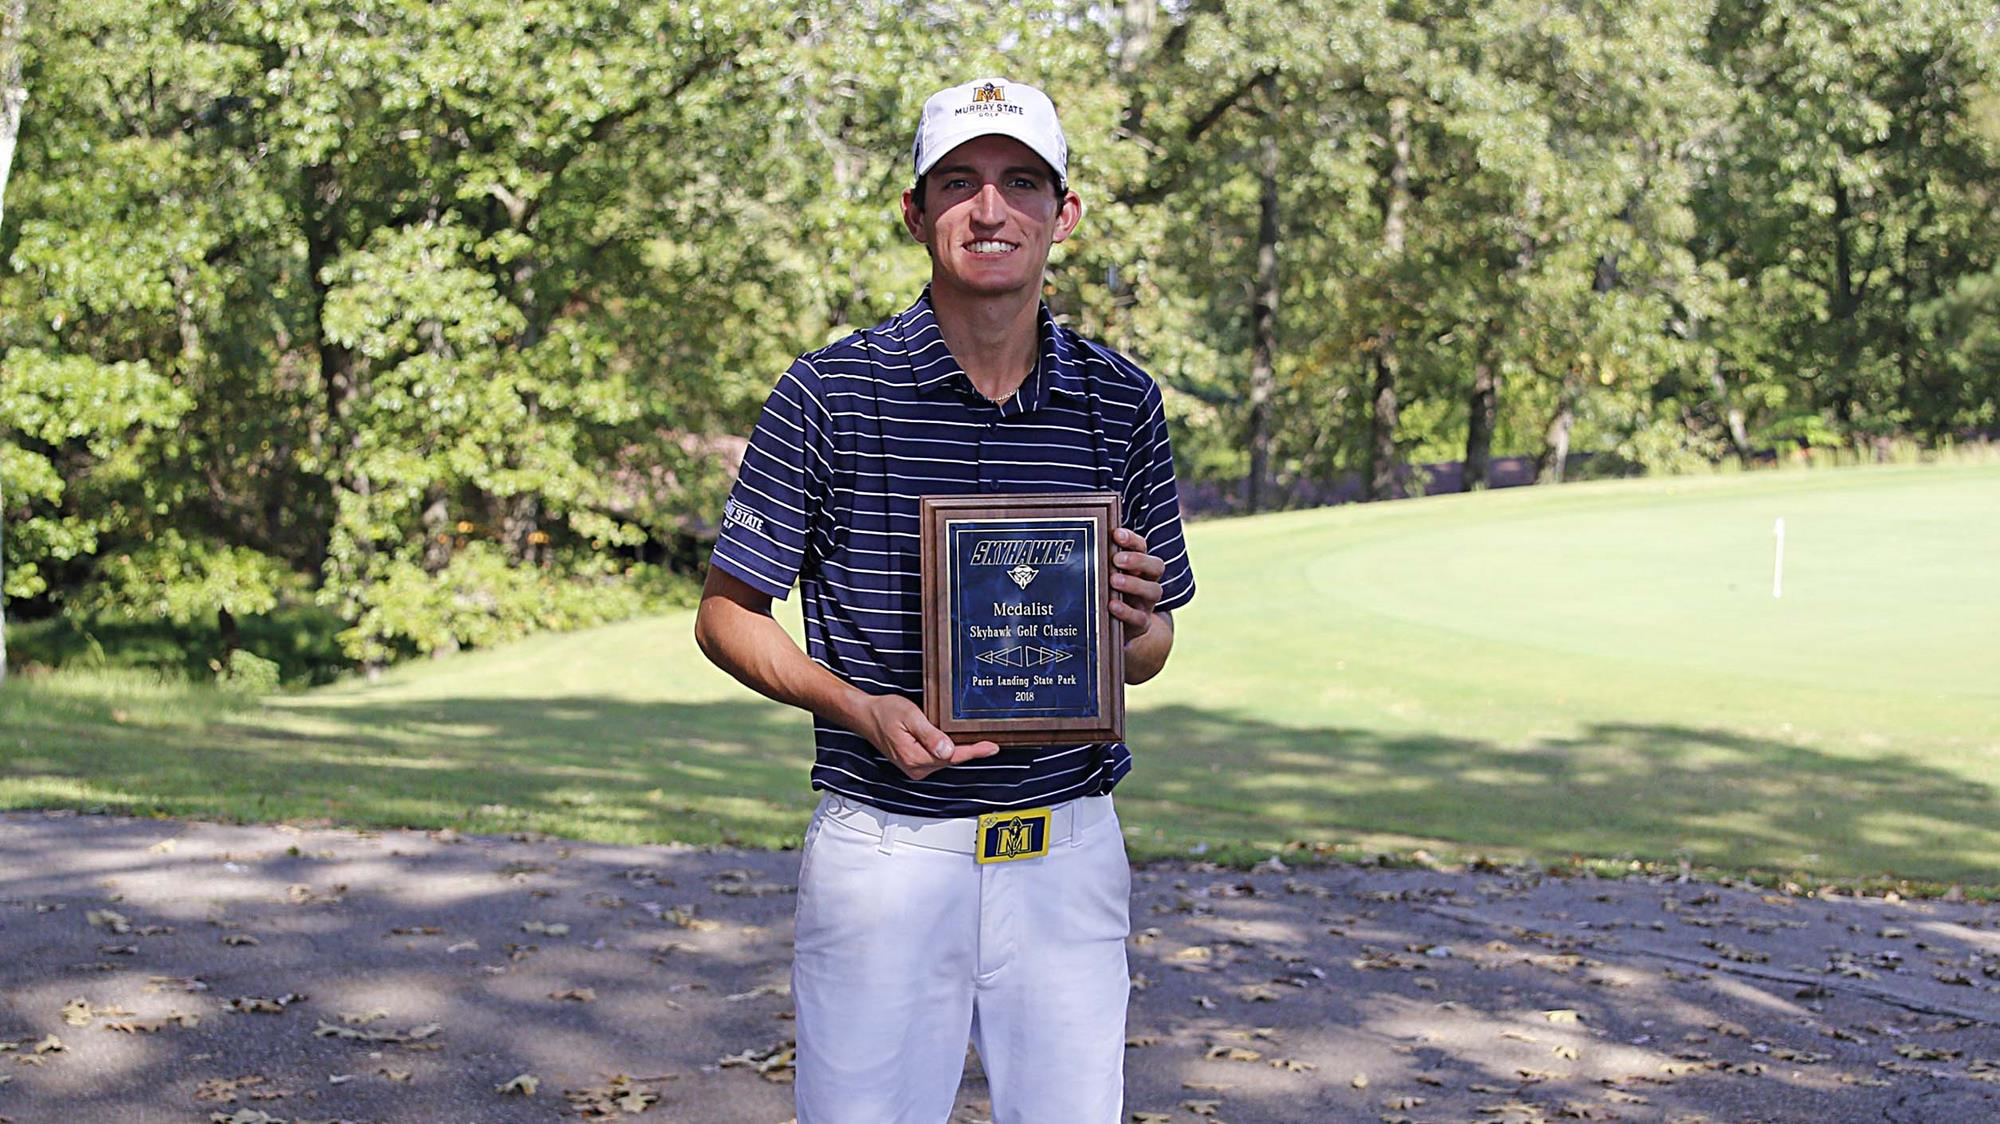 Knight wins UTM Classic/Racers finish second